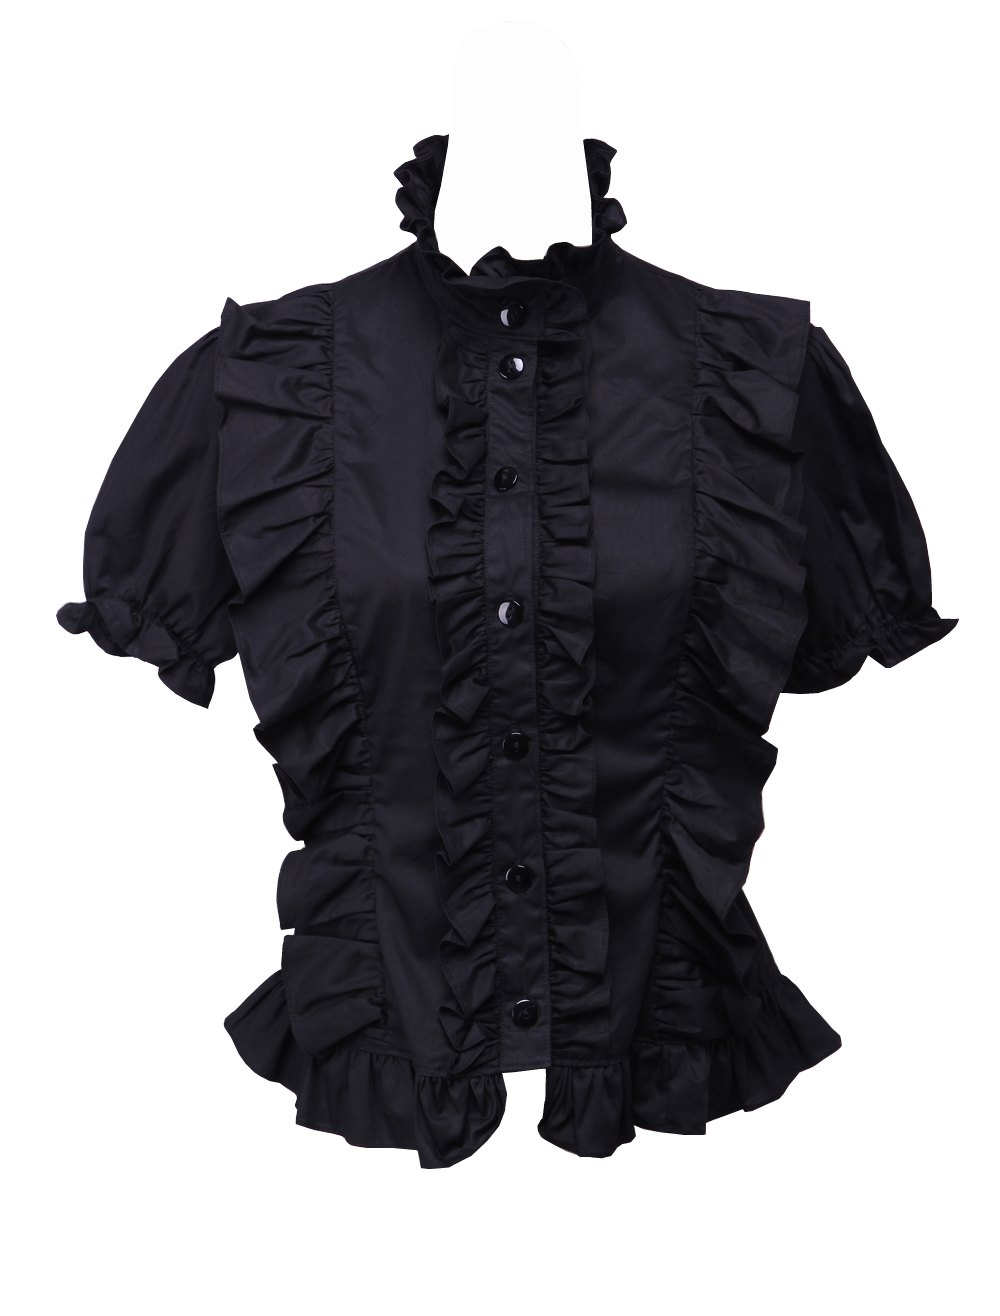 Primary image for Black Cotton Stand-up Collar Gothic Victorian Ruffle Lolita Shirt Blouse